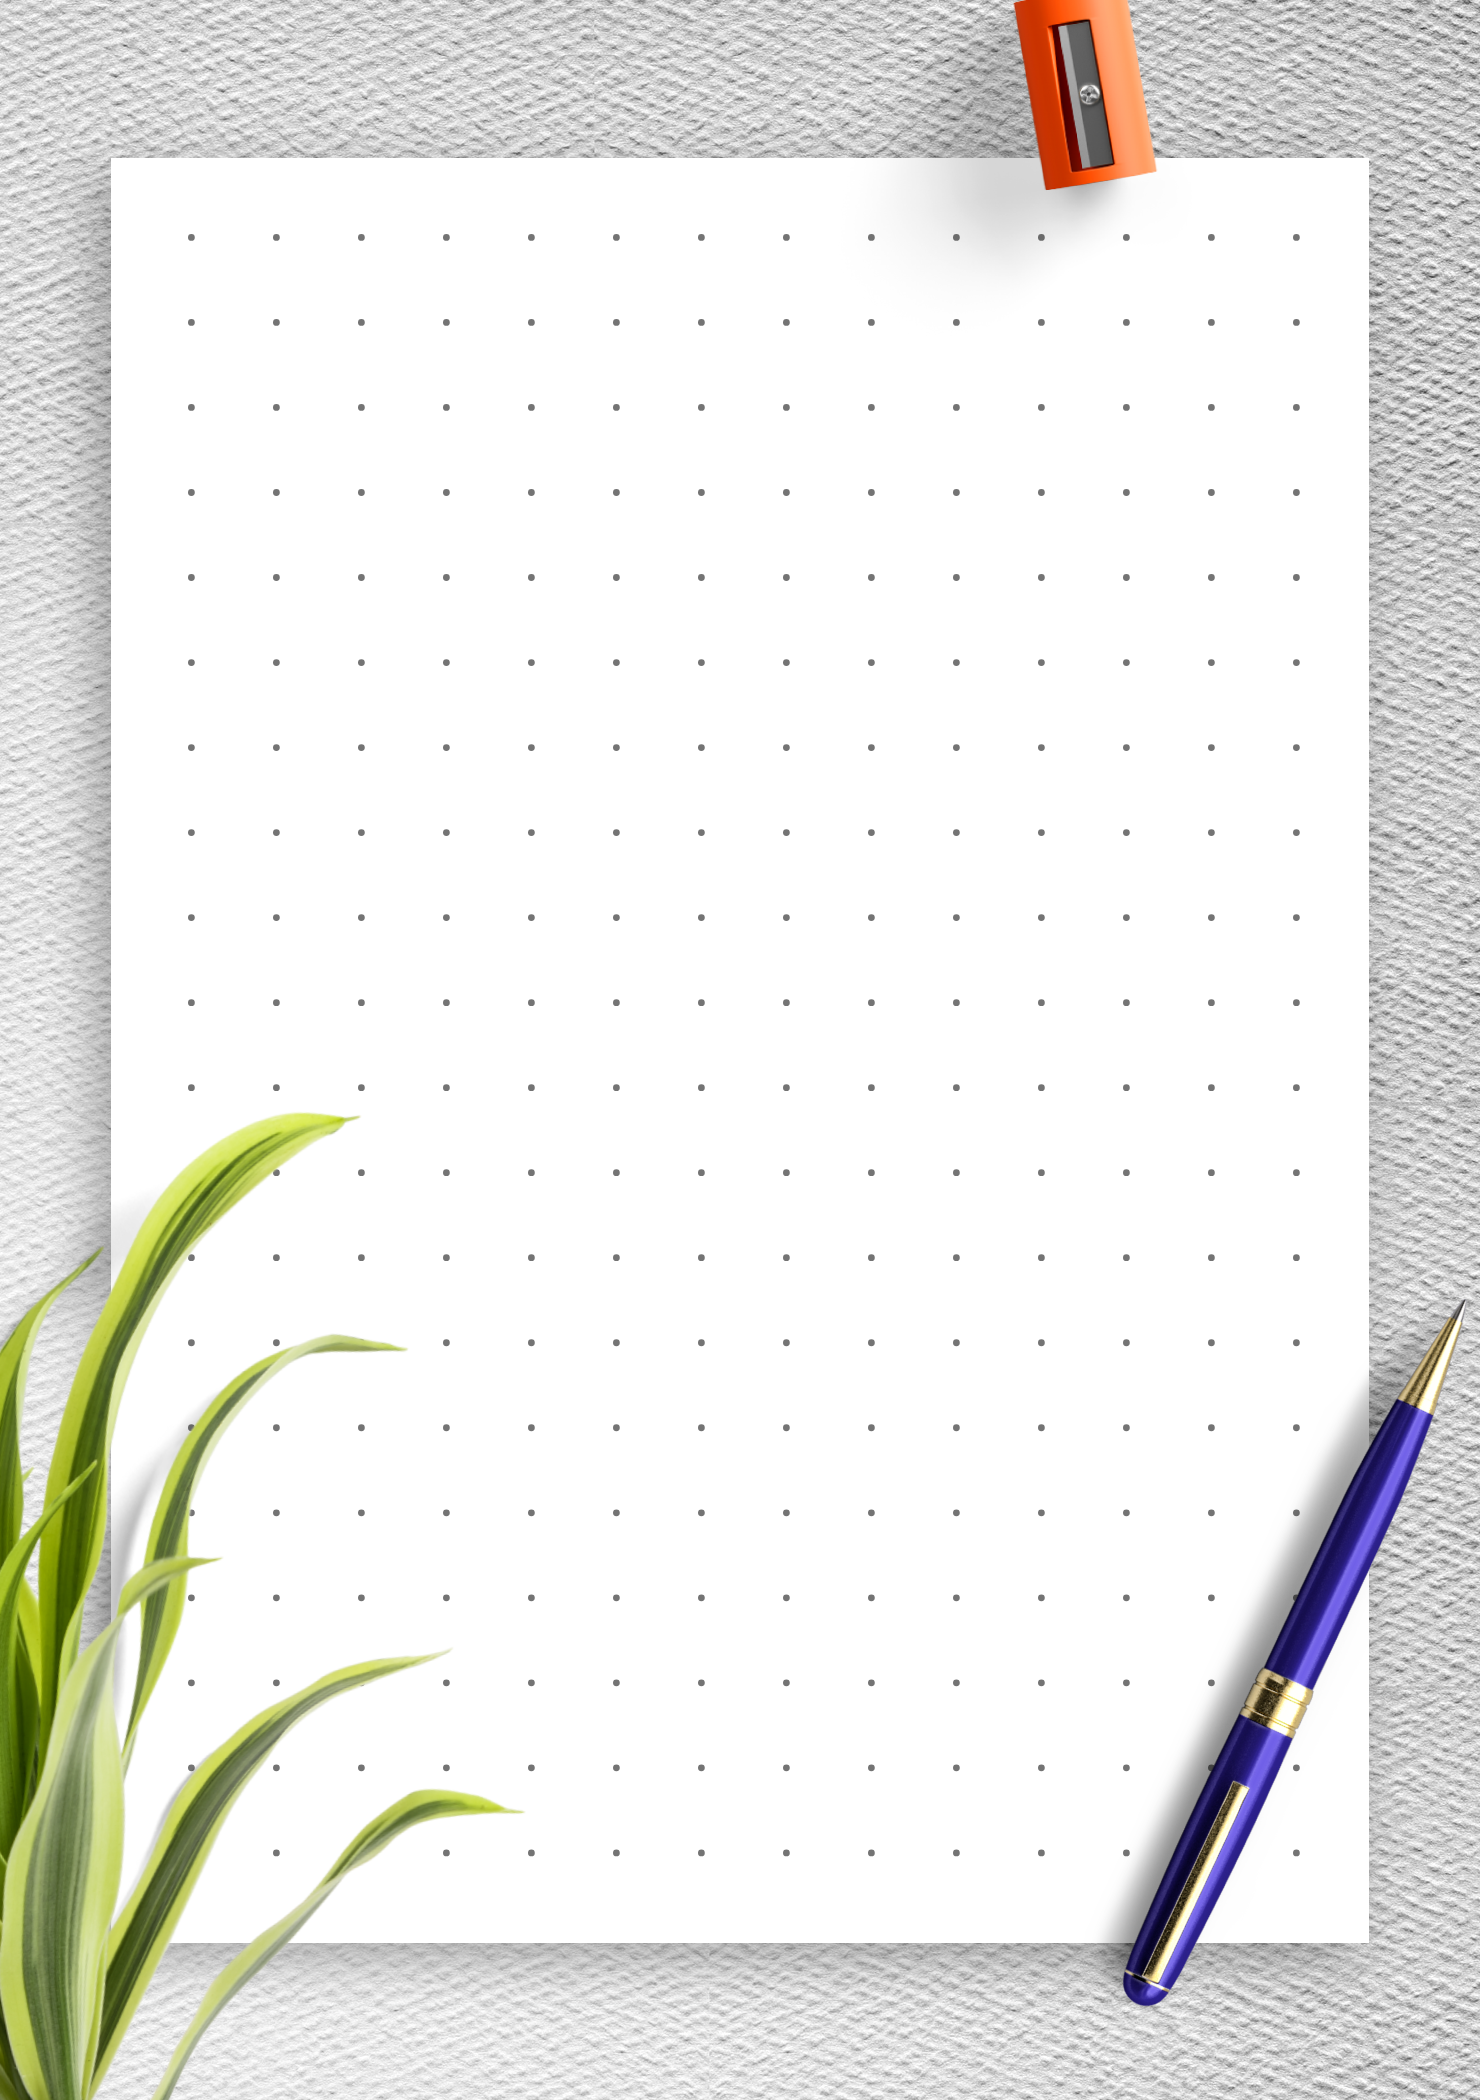 image relating to Dot Grid Paper Printable identify Absolutely free Printable Dot Grid Paper with 10 mm spacing PDF Down load